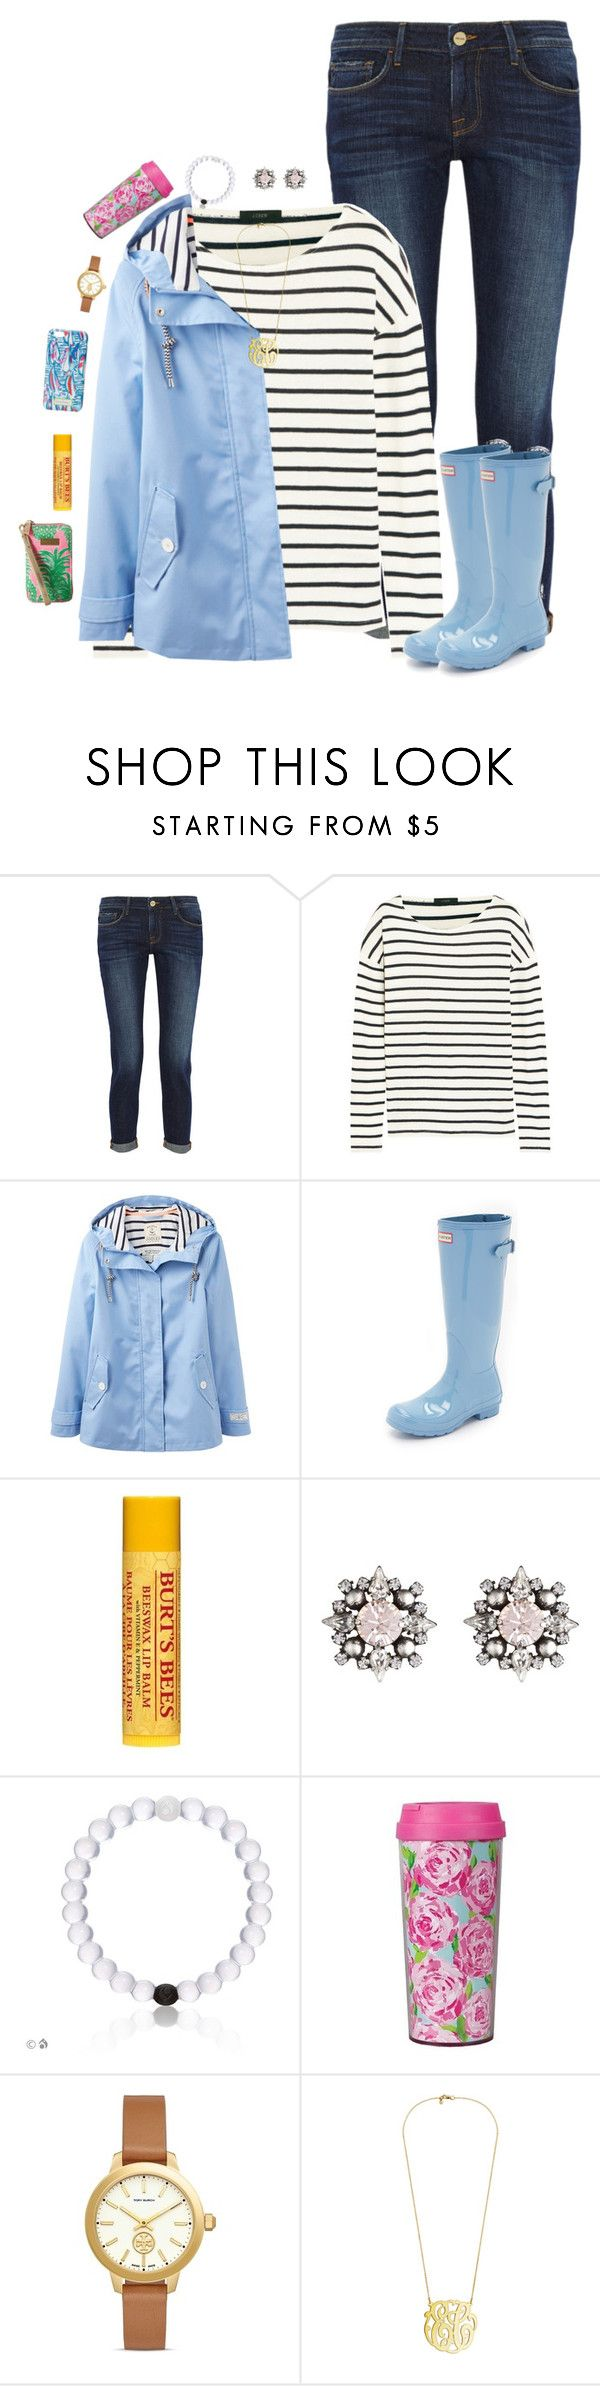 """""""read the description for life updates"""" by preppy-ginger-girl on Polyvore featuring Frame Denim, J.Crew, Joules, Hunter, Burt's Bees, DANNIJO, Lilly Pulitzer and Tory Burch"""